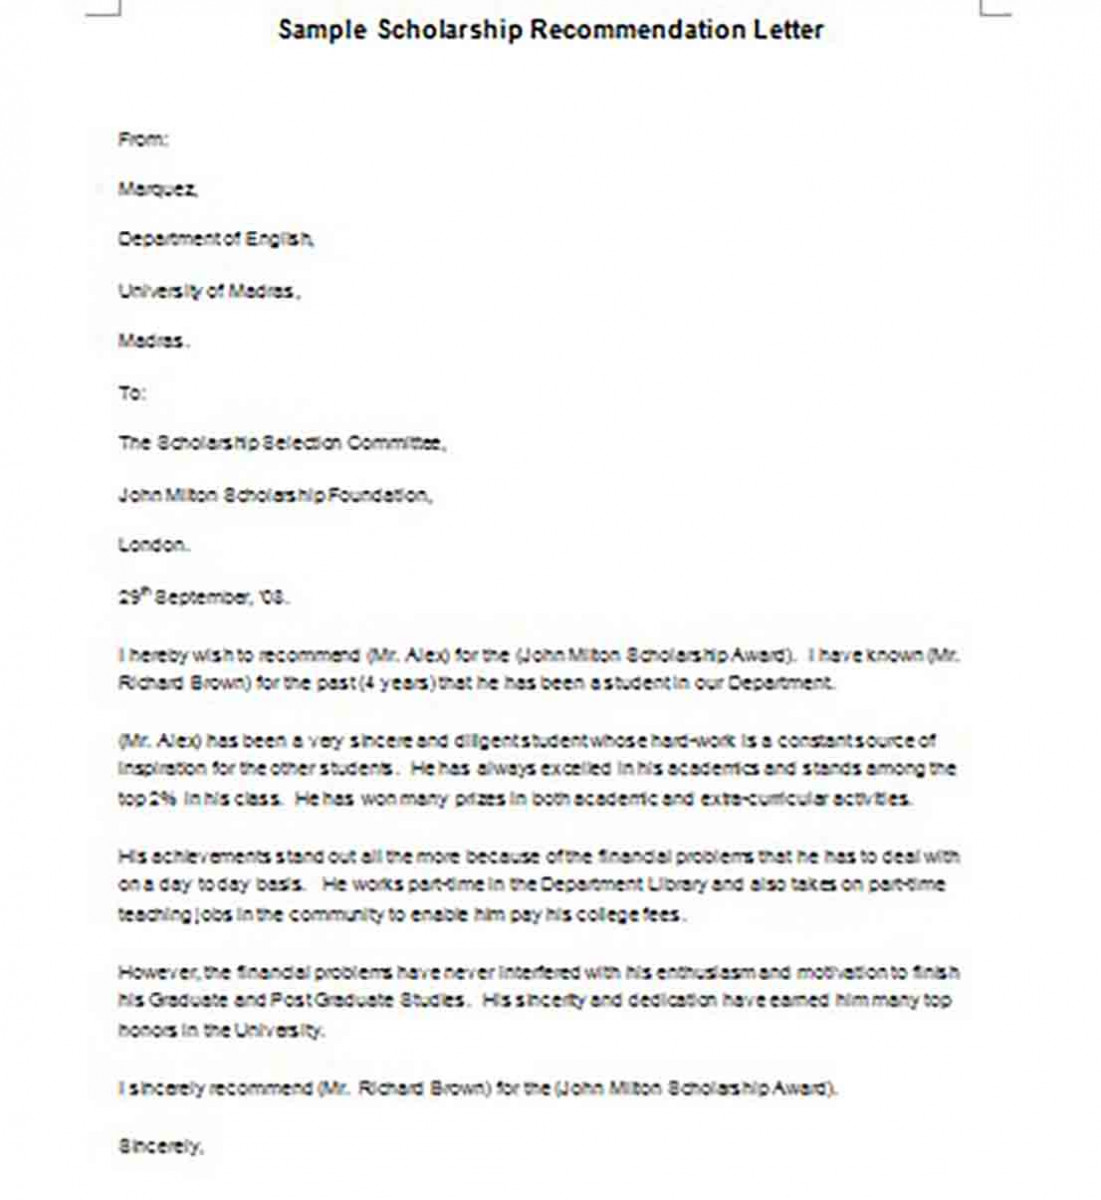 Scholarship Recommendation Letter templates